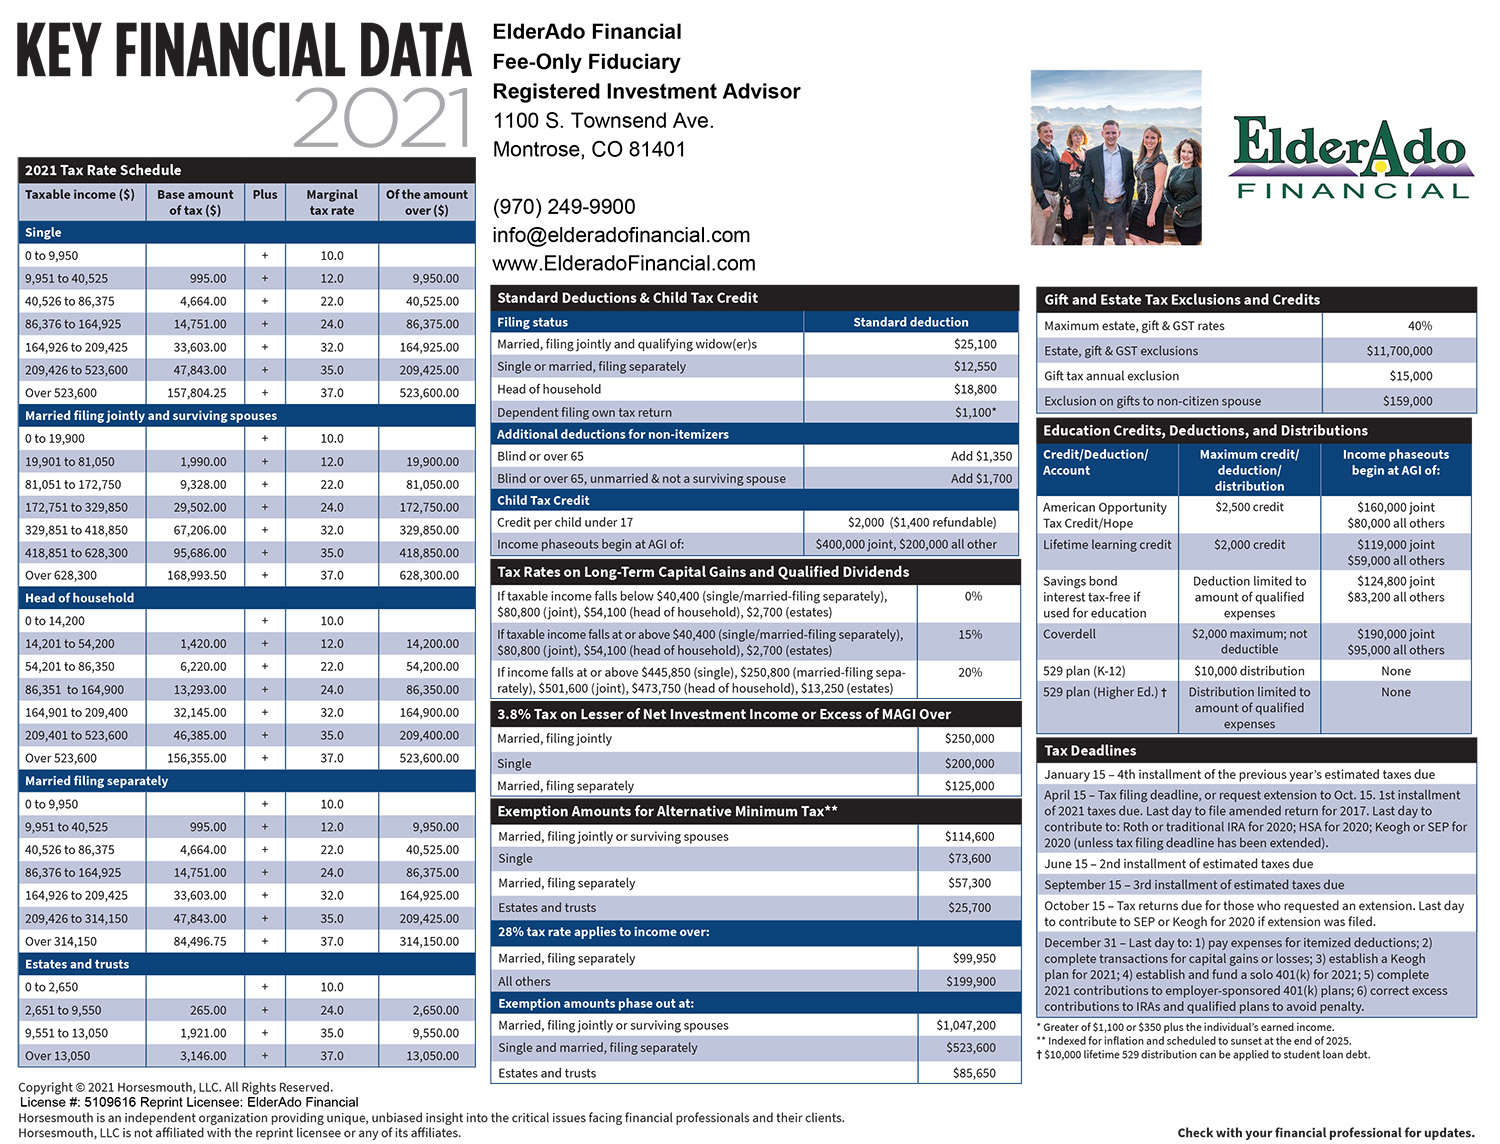 2021 Key Financial Data